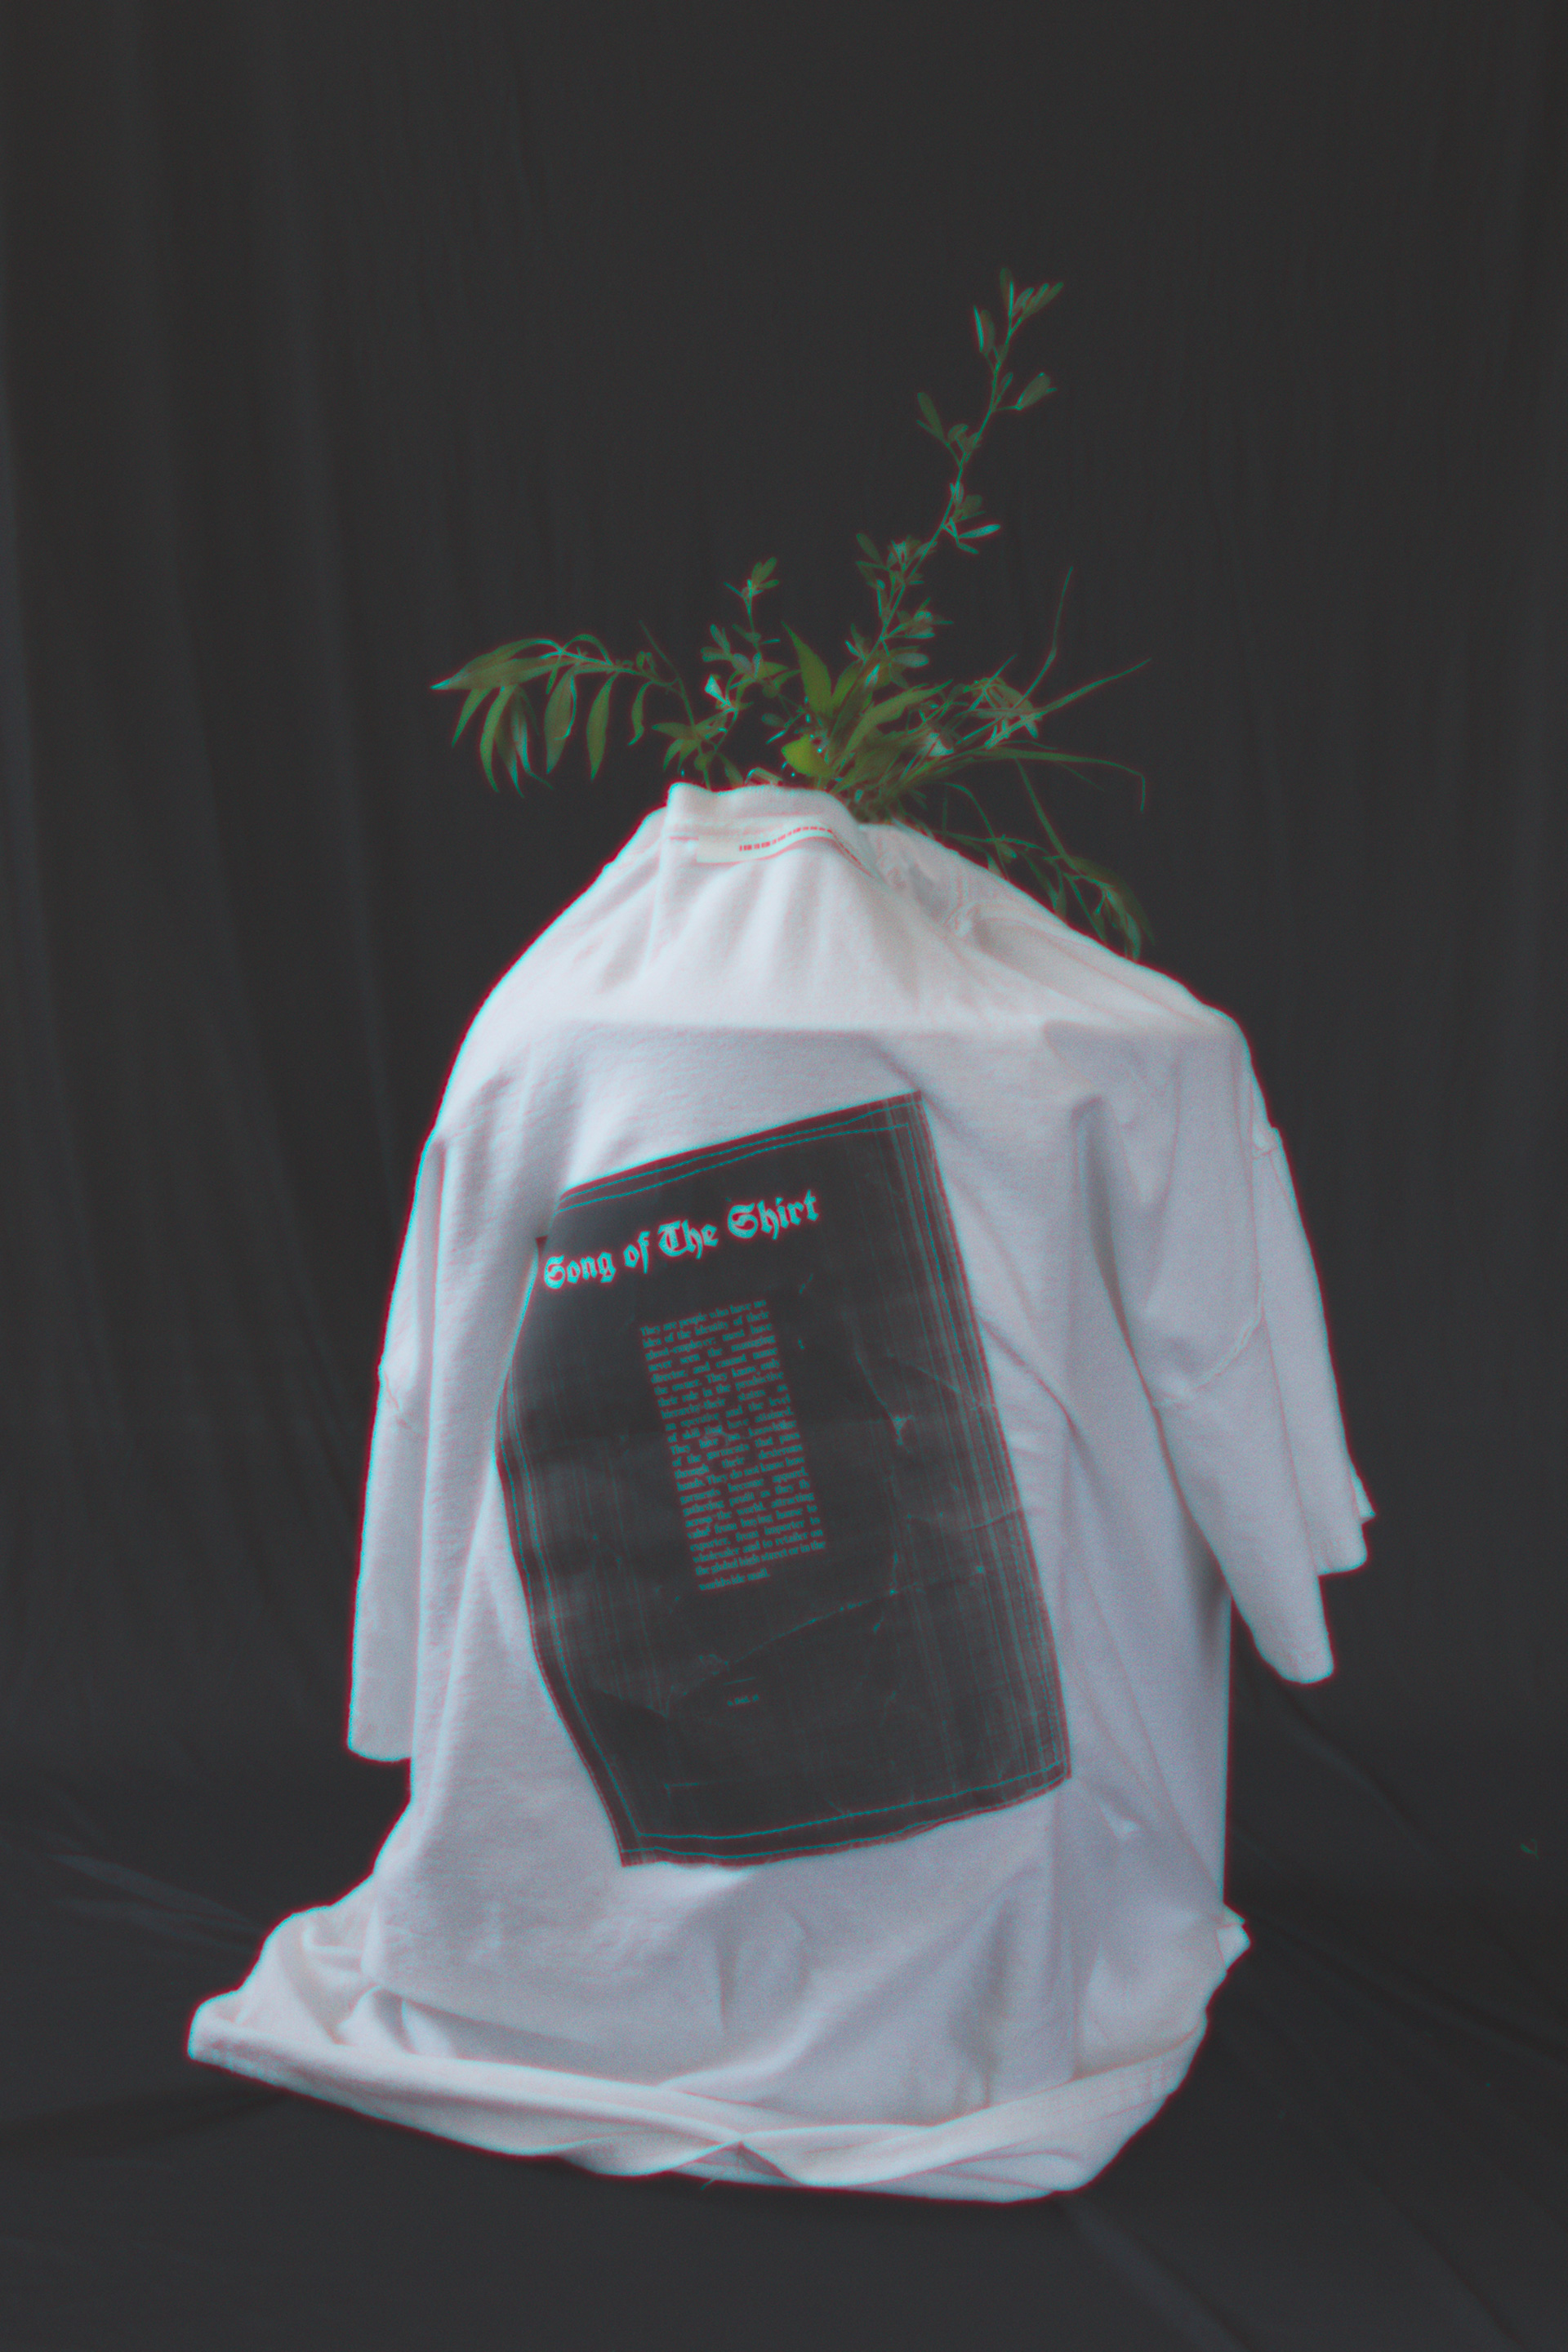 song of the shirt